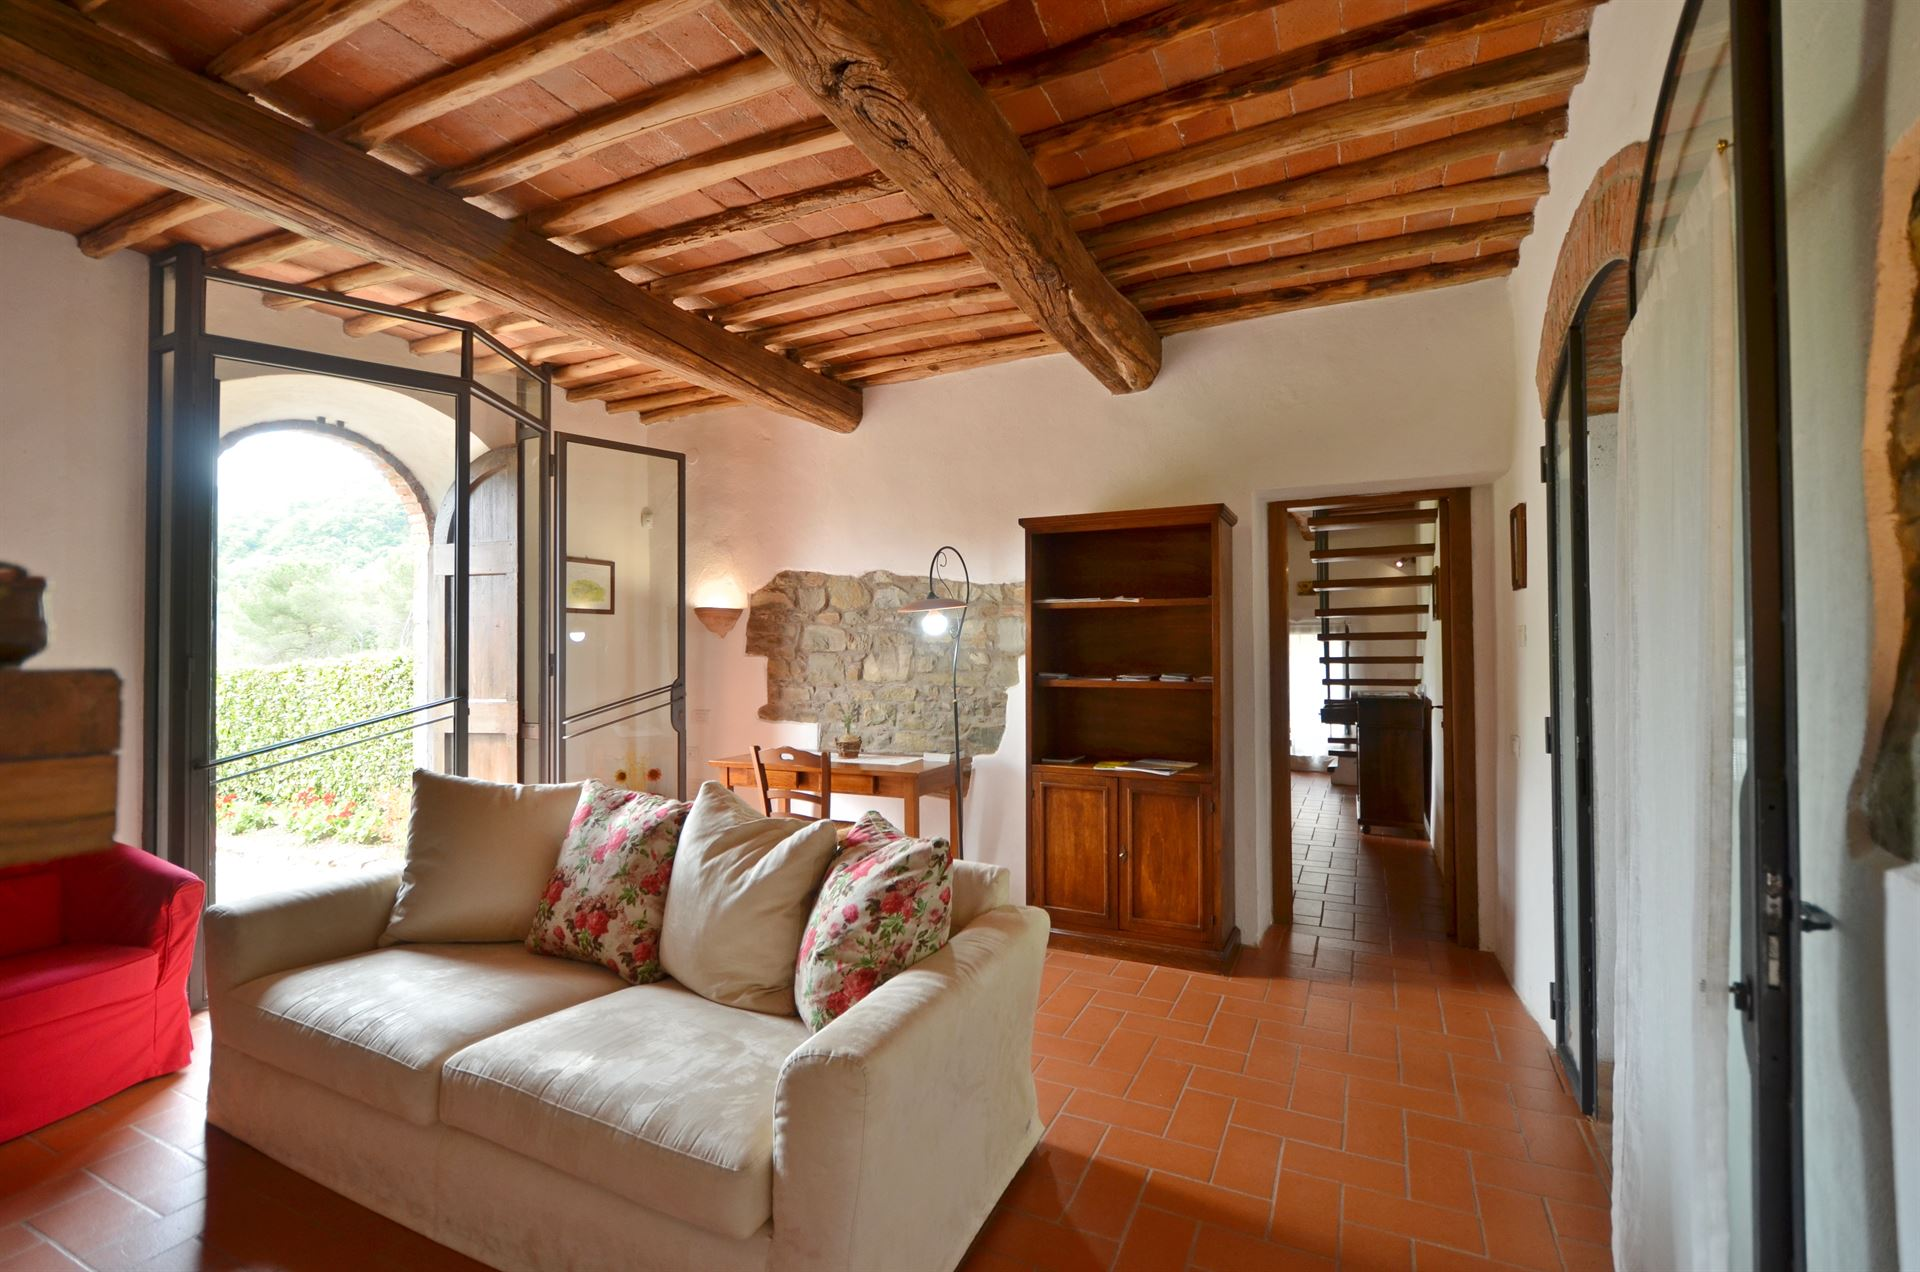 Florence Badkamer Plafond : Poggetto vakantiehuis in lucolena greve in chianti florence